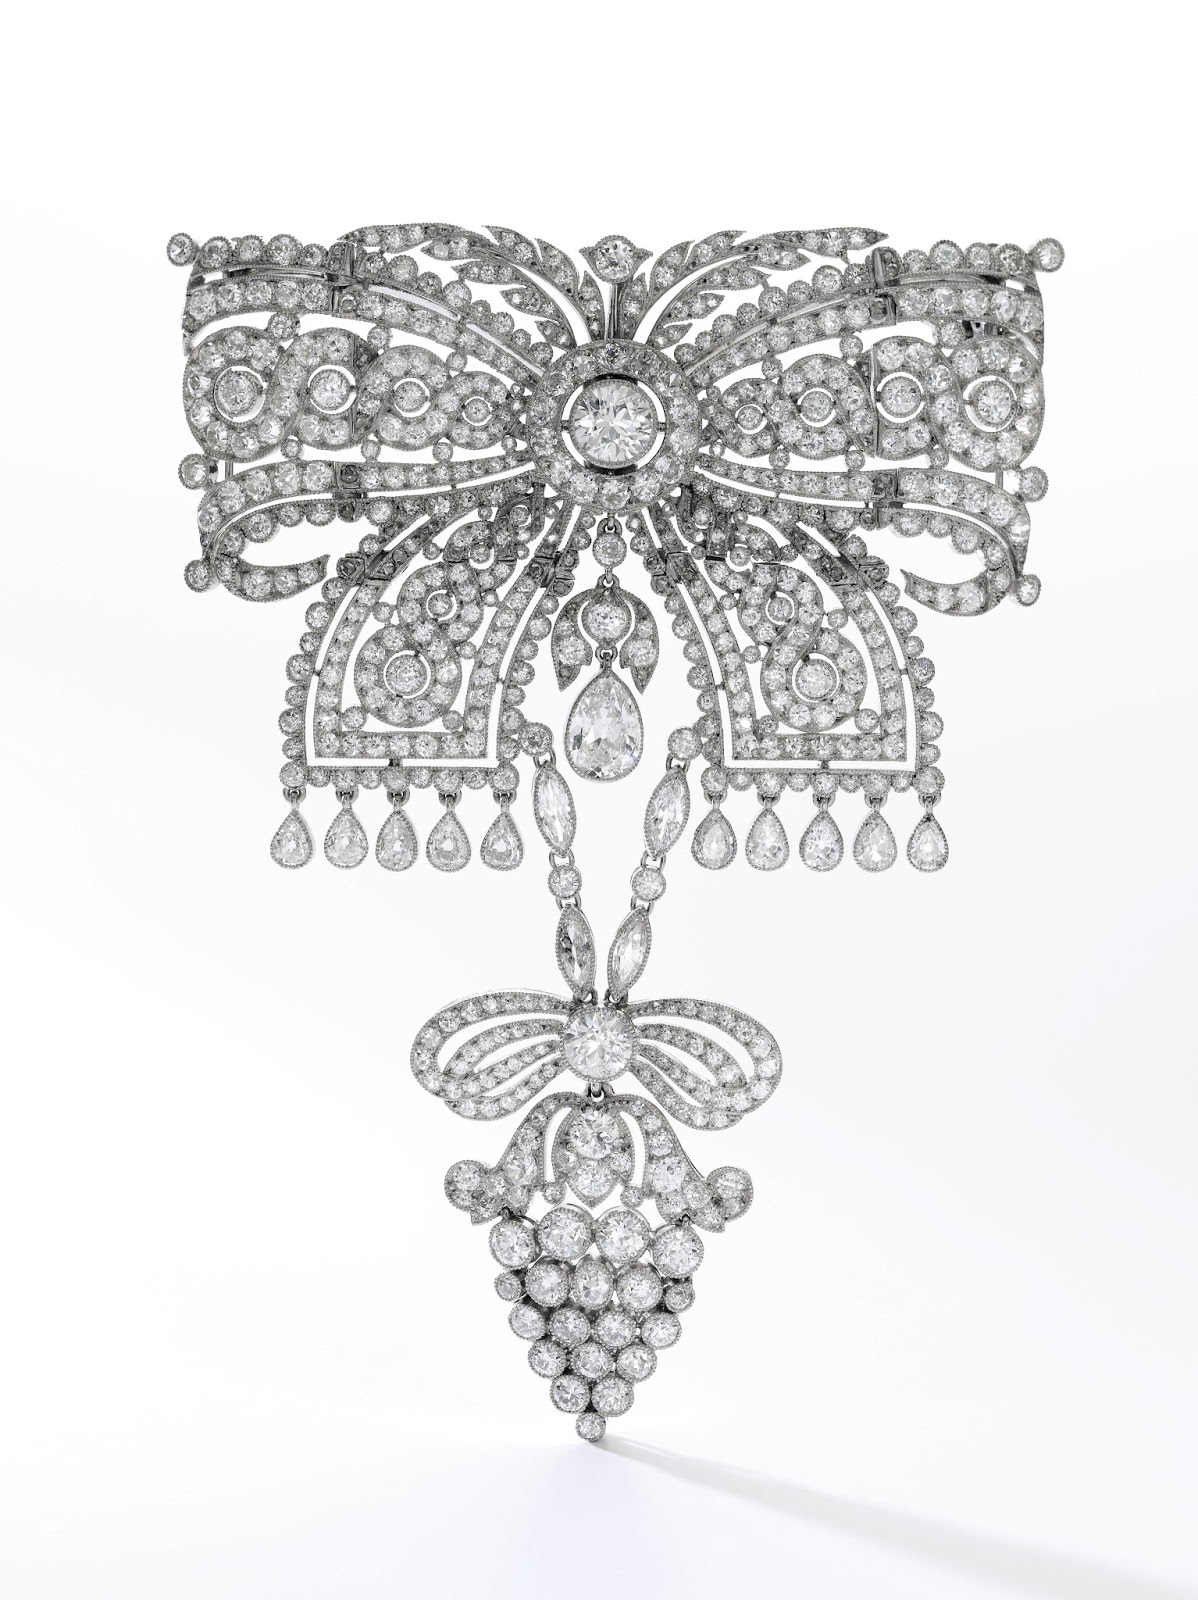 Lot 431 - Diamond brooch, Cartier, 1911